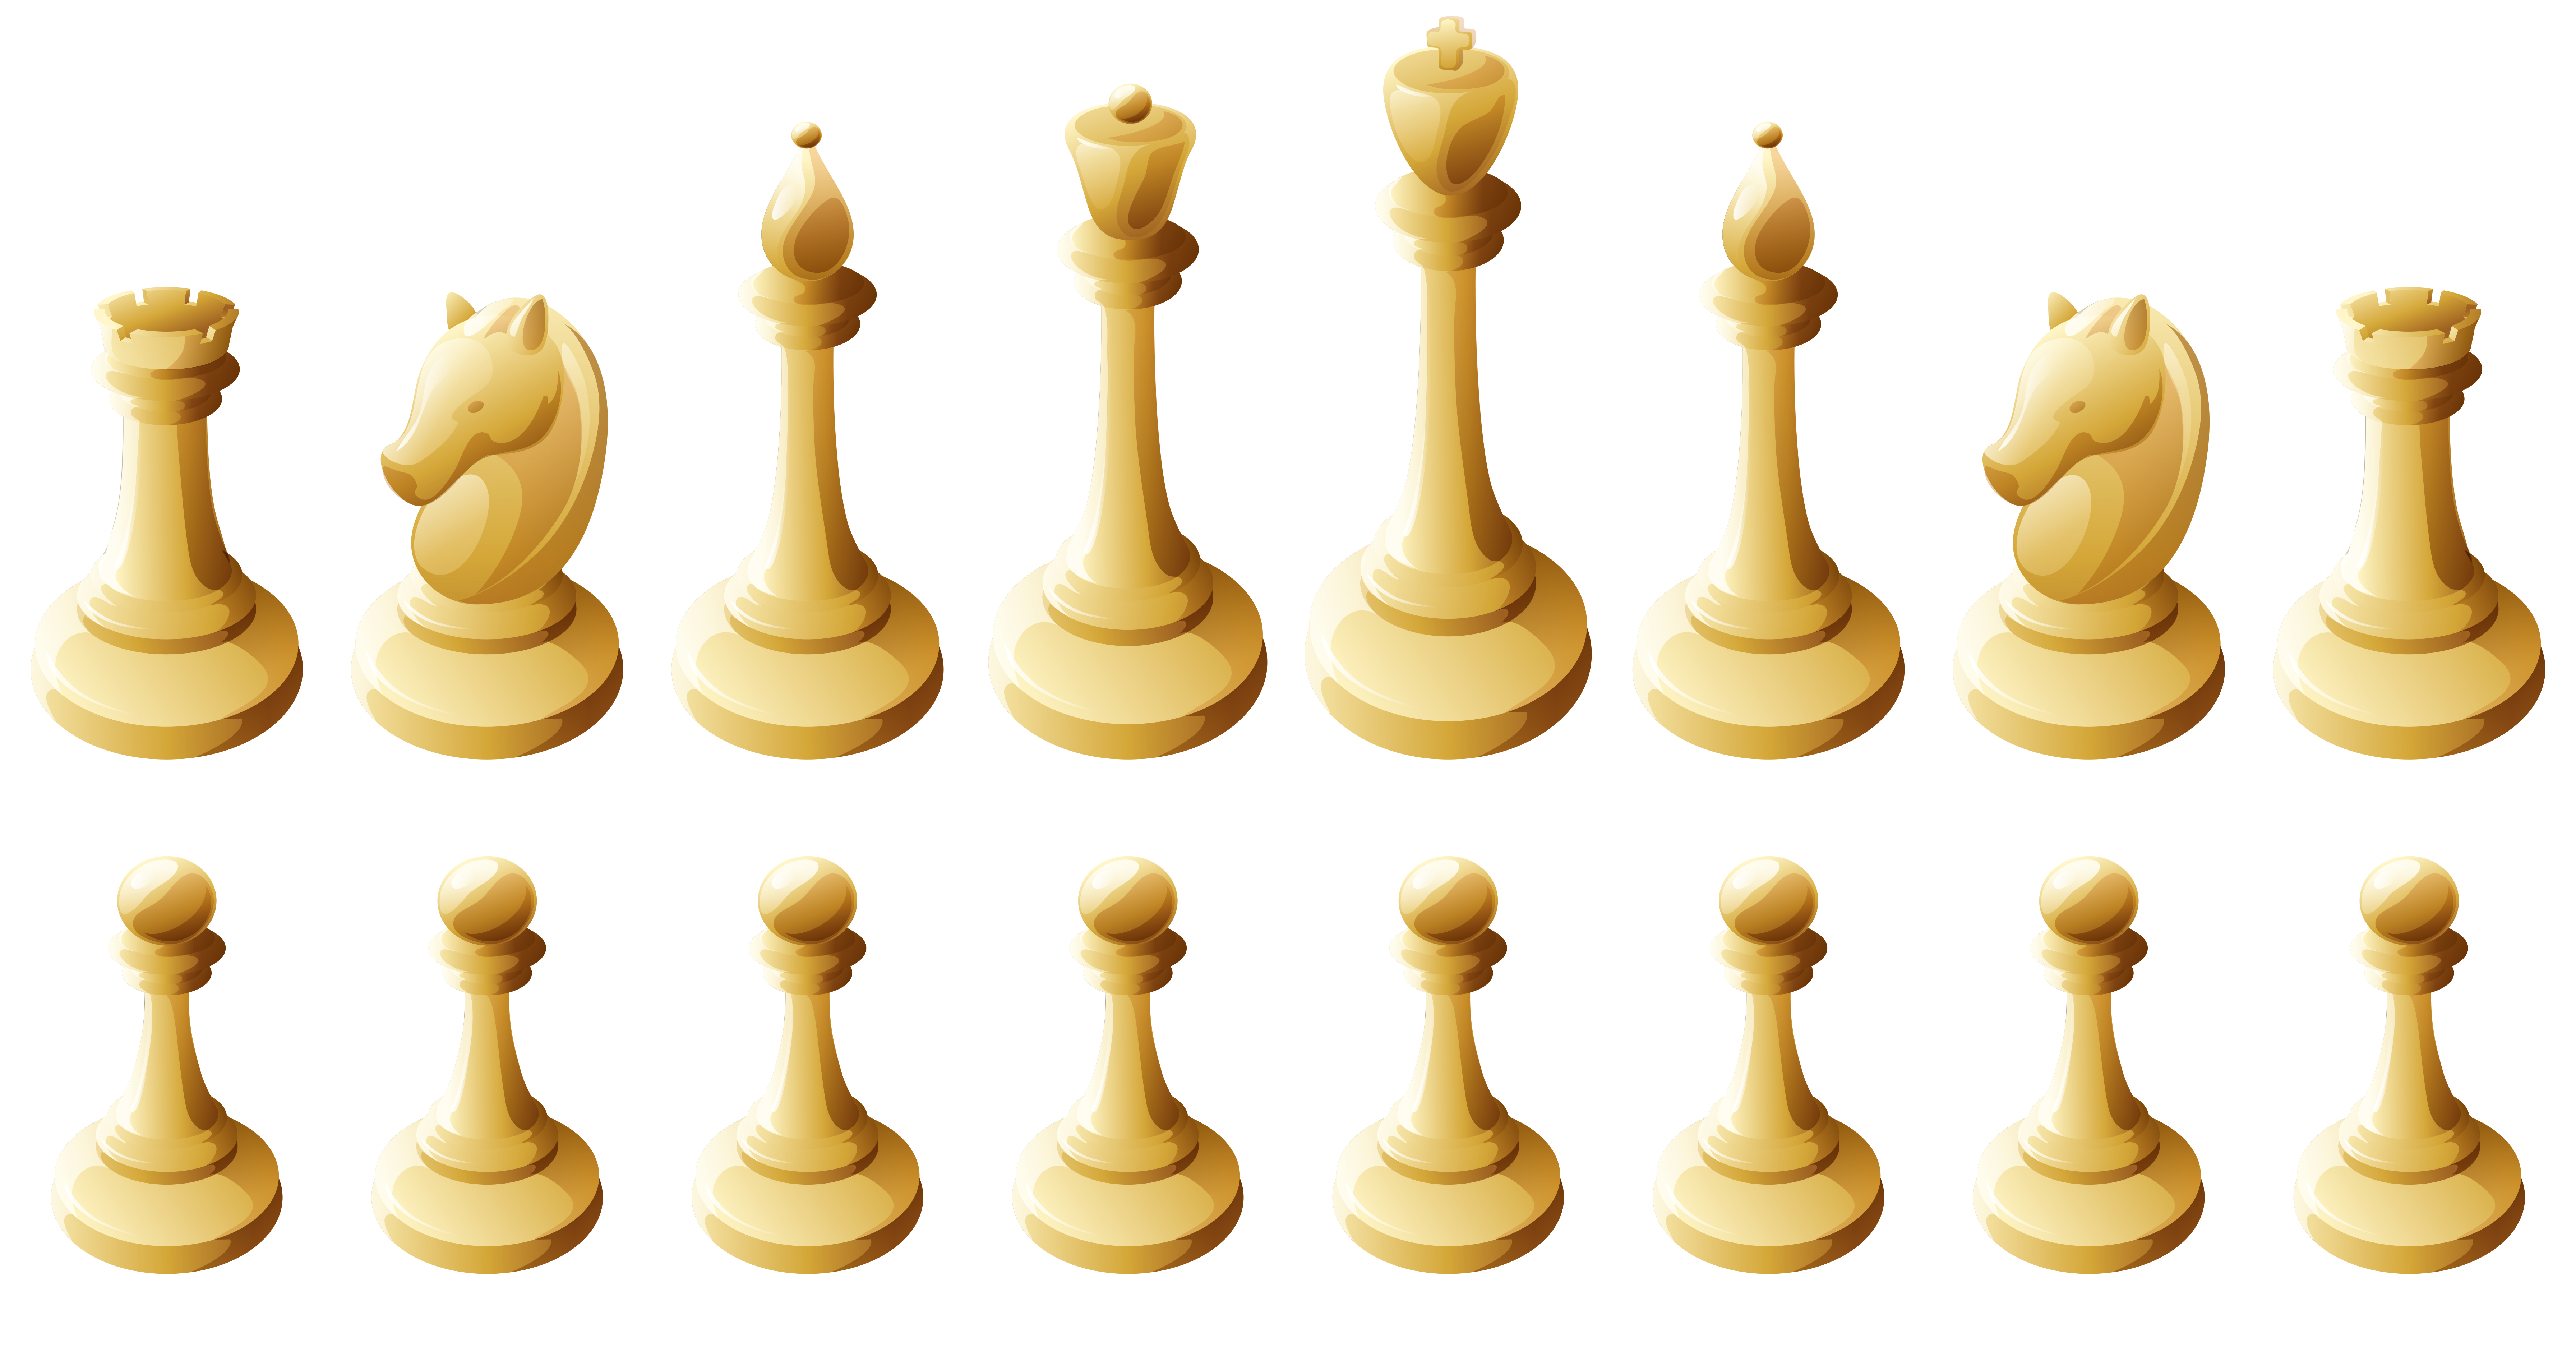 Buildings that are chess pieces clipart clipart royalty free download White Chess Pieces PNG Clipart - Best WEB Clipart clipart royalty free download